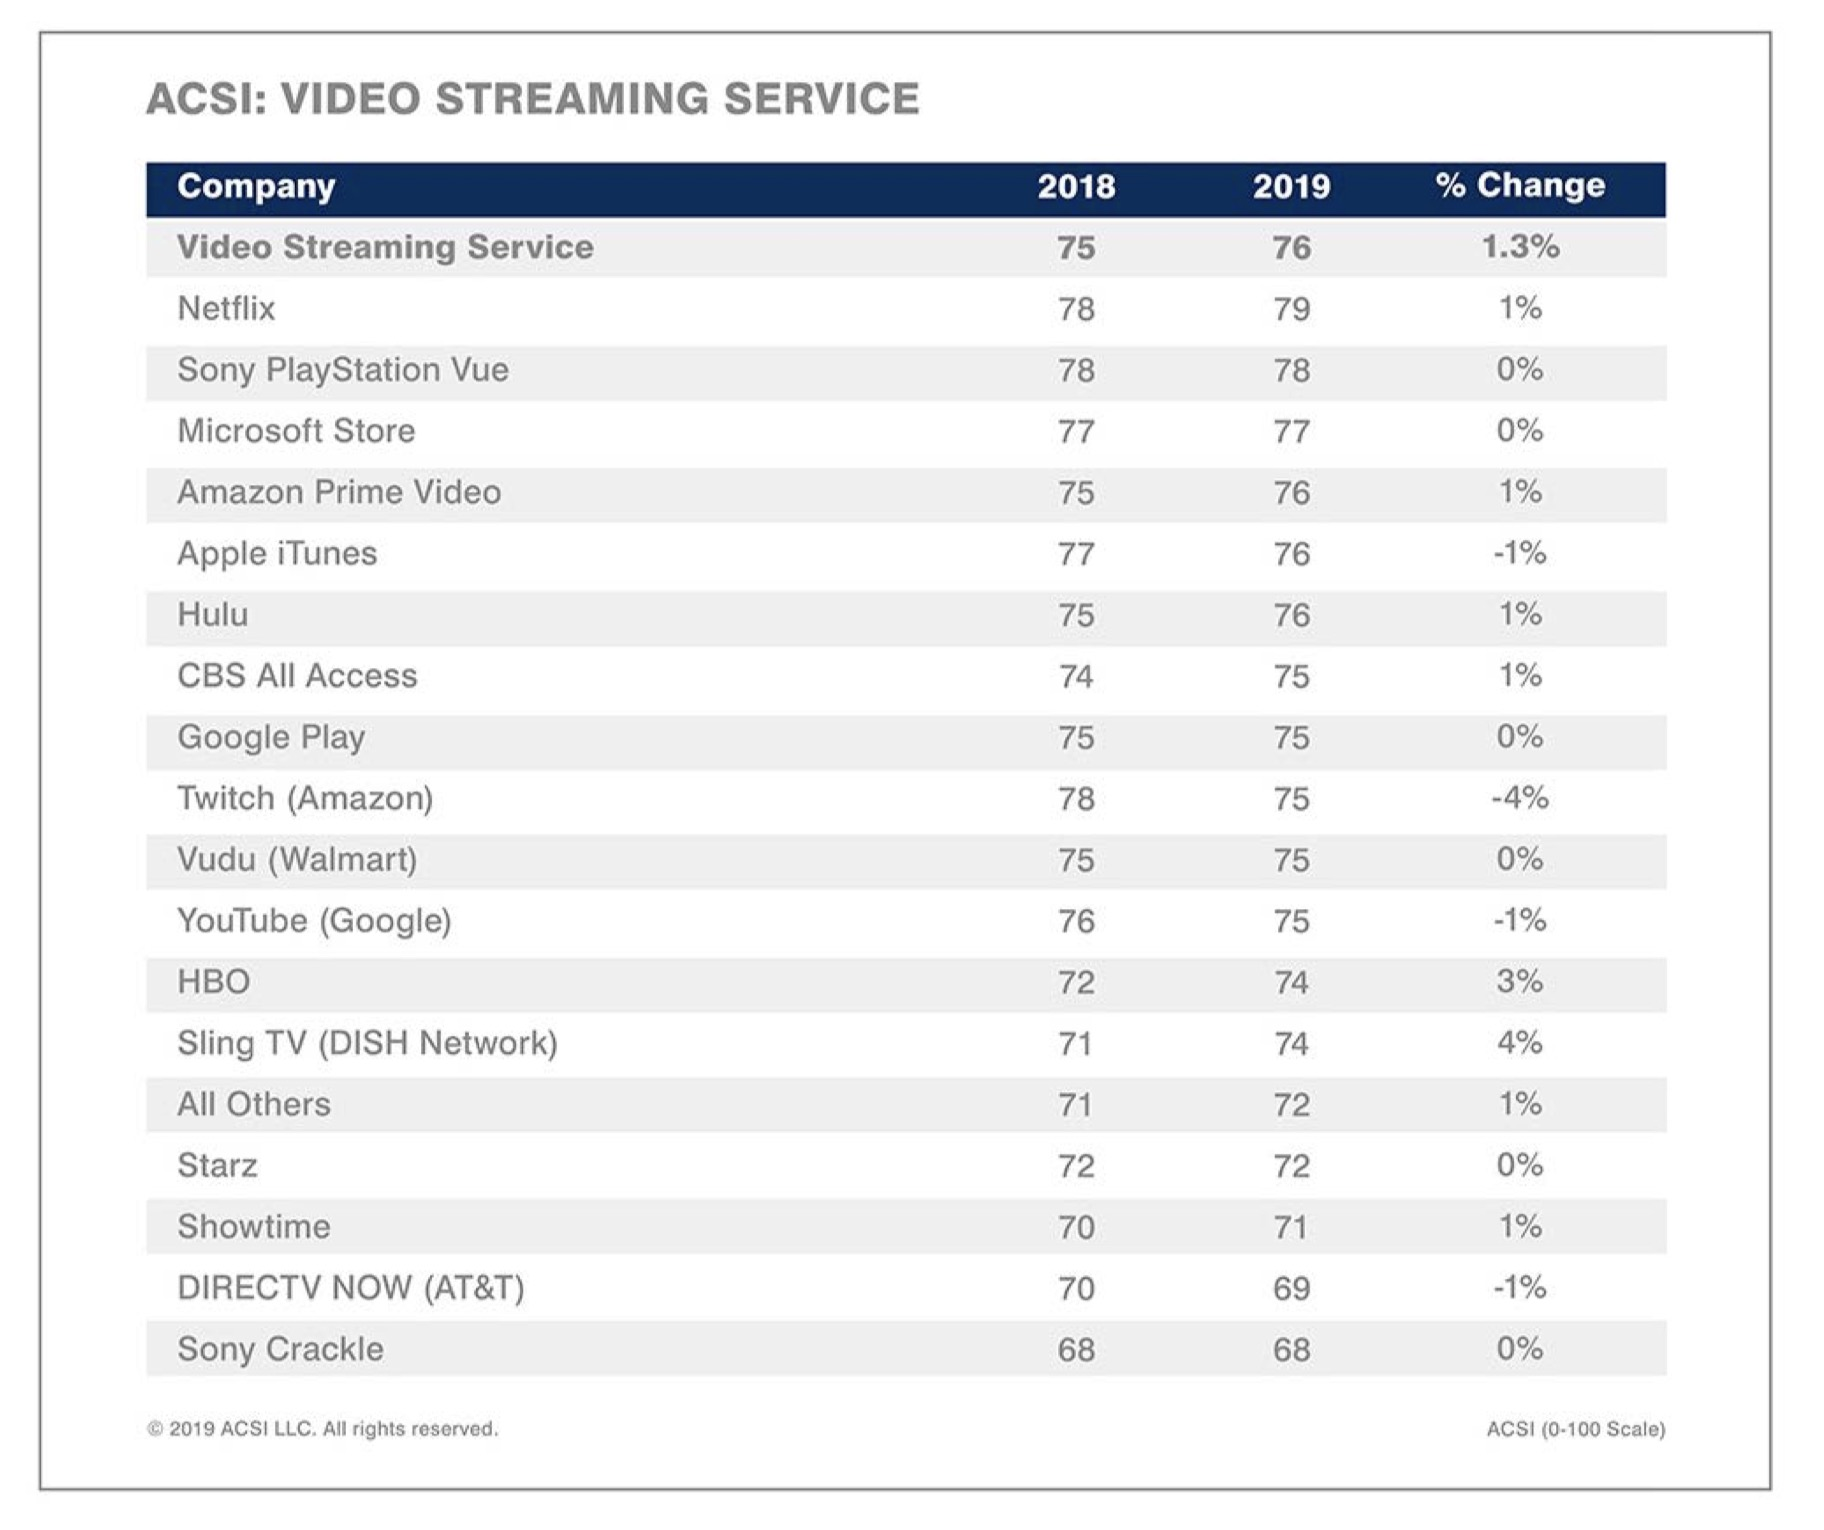 The ACSI's video-streaming service ranking for 2019.